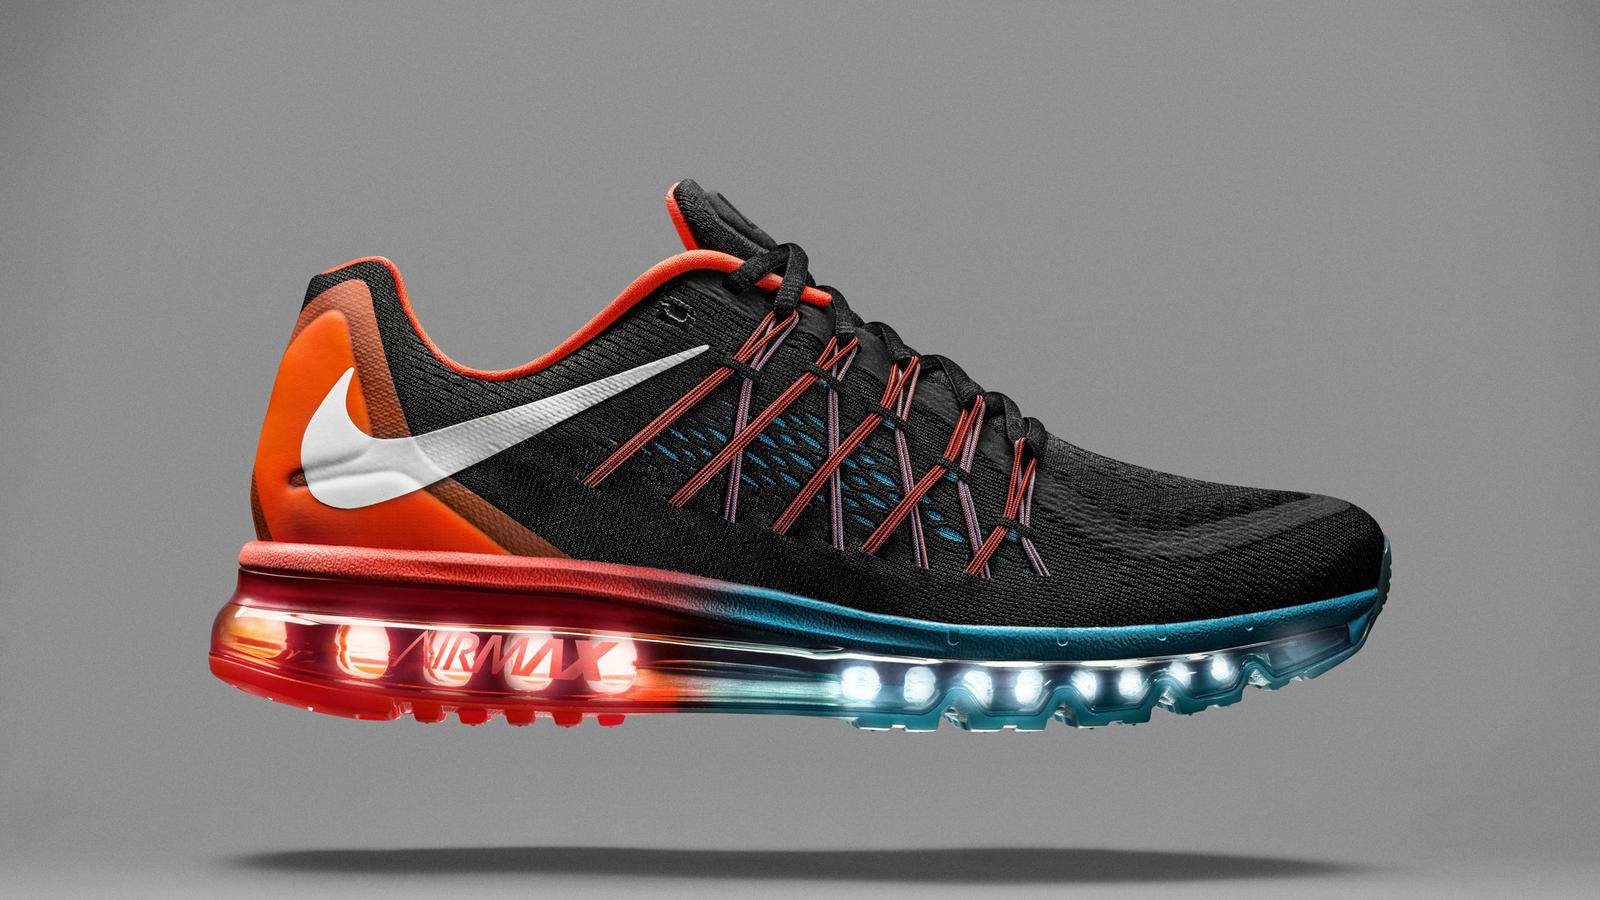 1bc044e6093825 Nike Air Max 2015  Ultra-Soft Cushioning